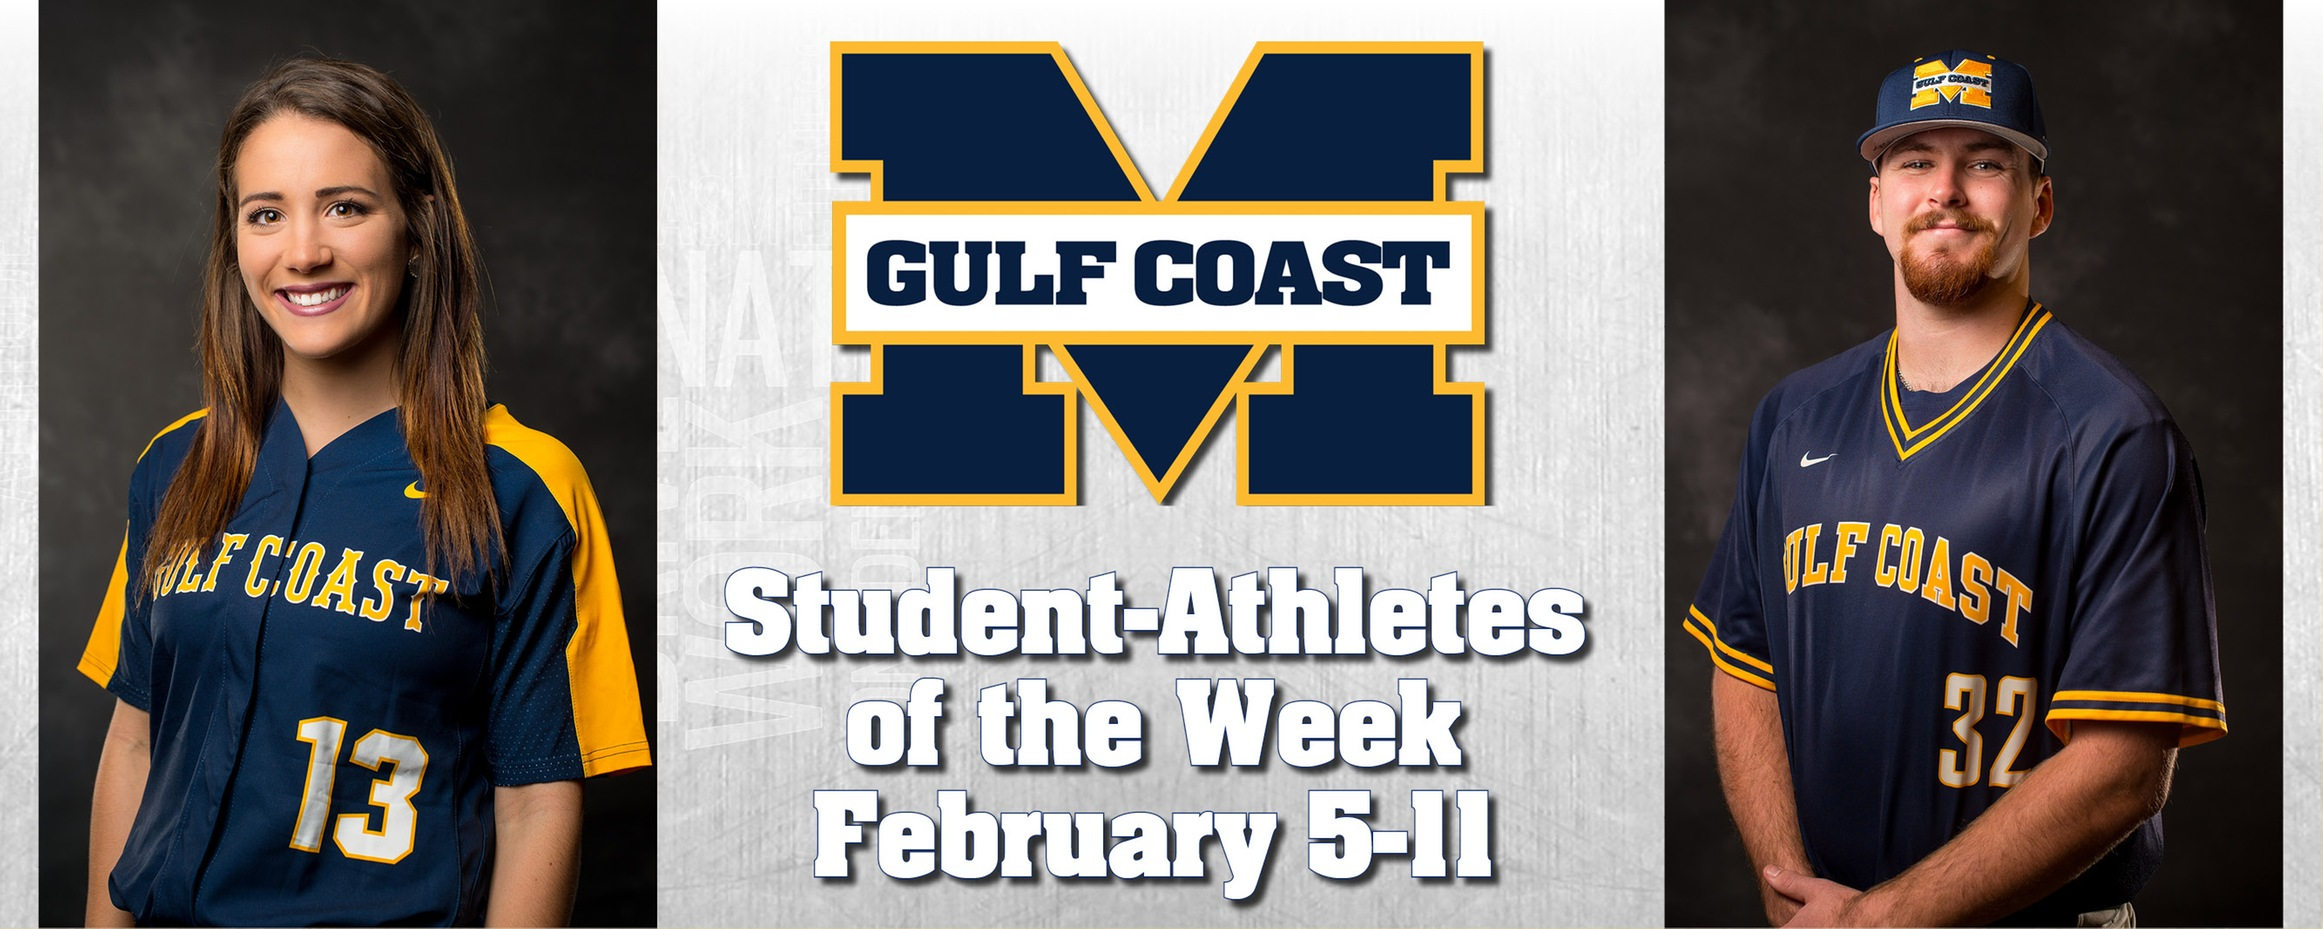 Bryant, McGrew named MGCCC Student-Athletes of the Week